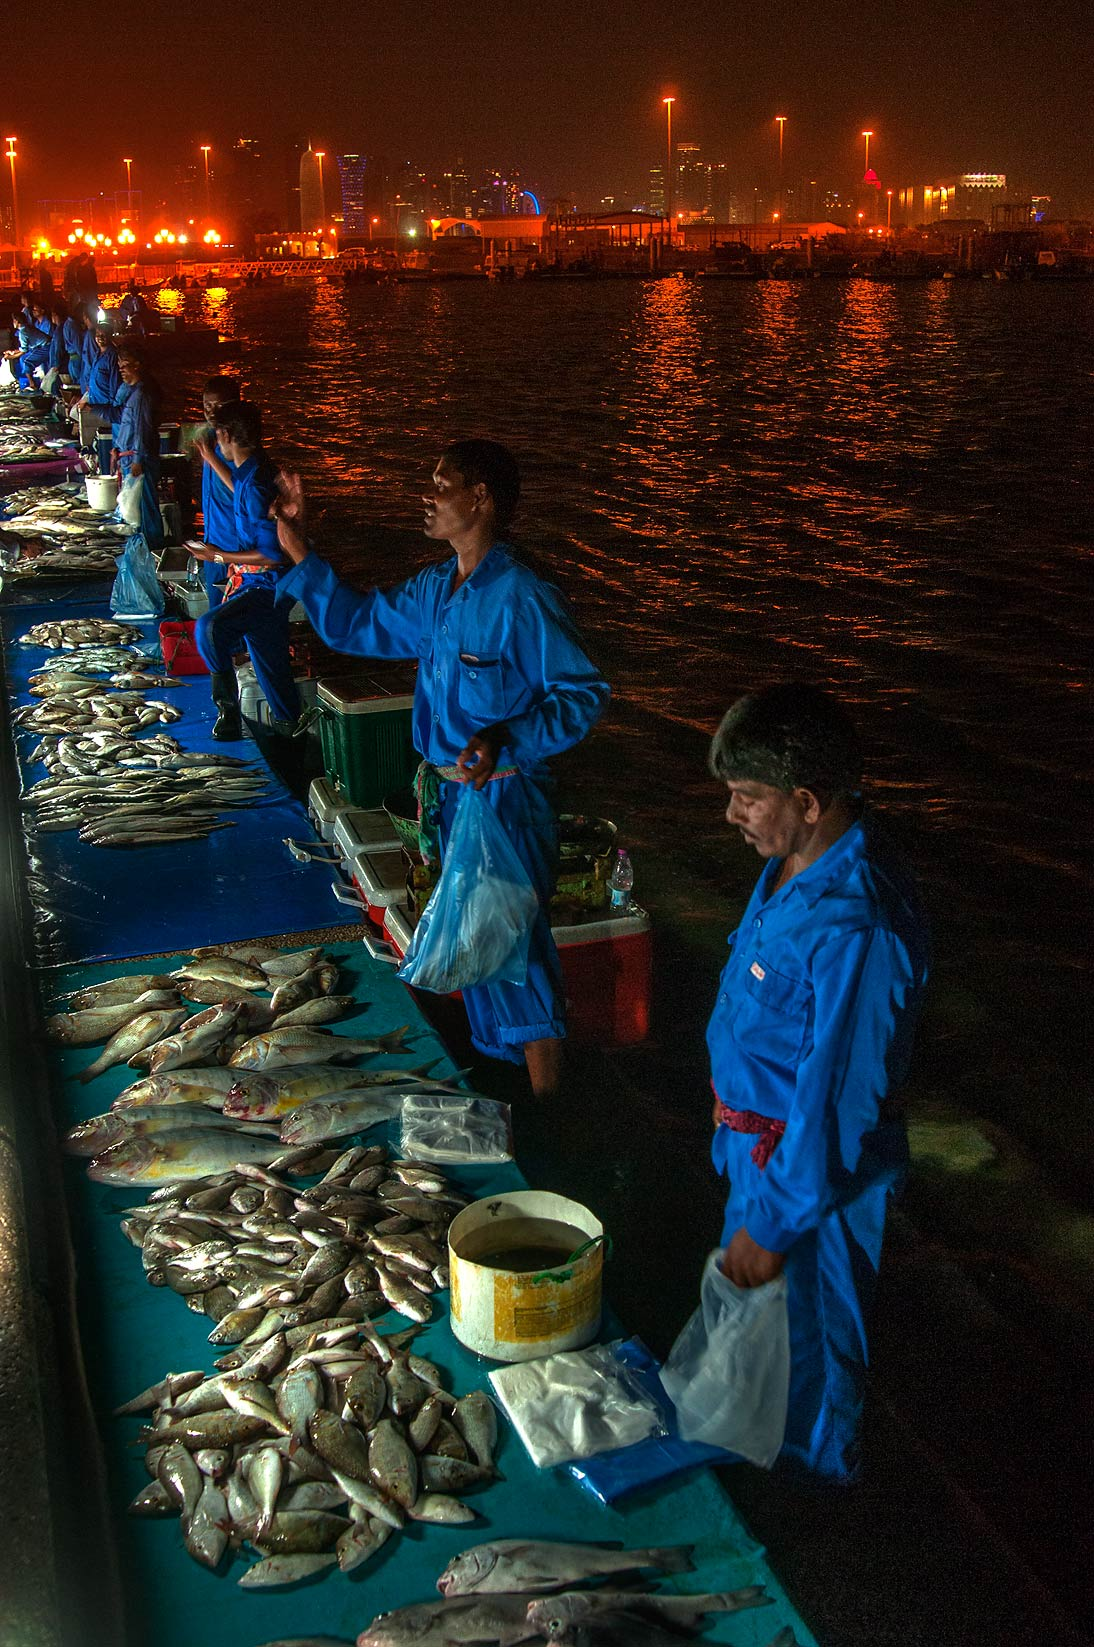 Evening fish market on Corniche (Fresh Fish Sold). Doha, Qatar